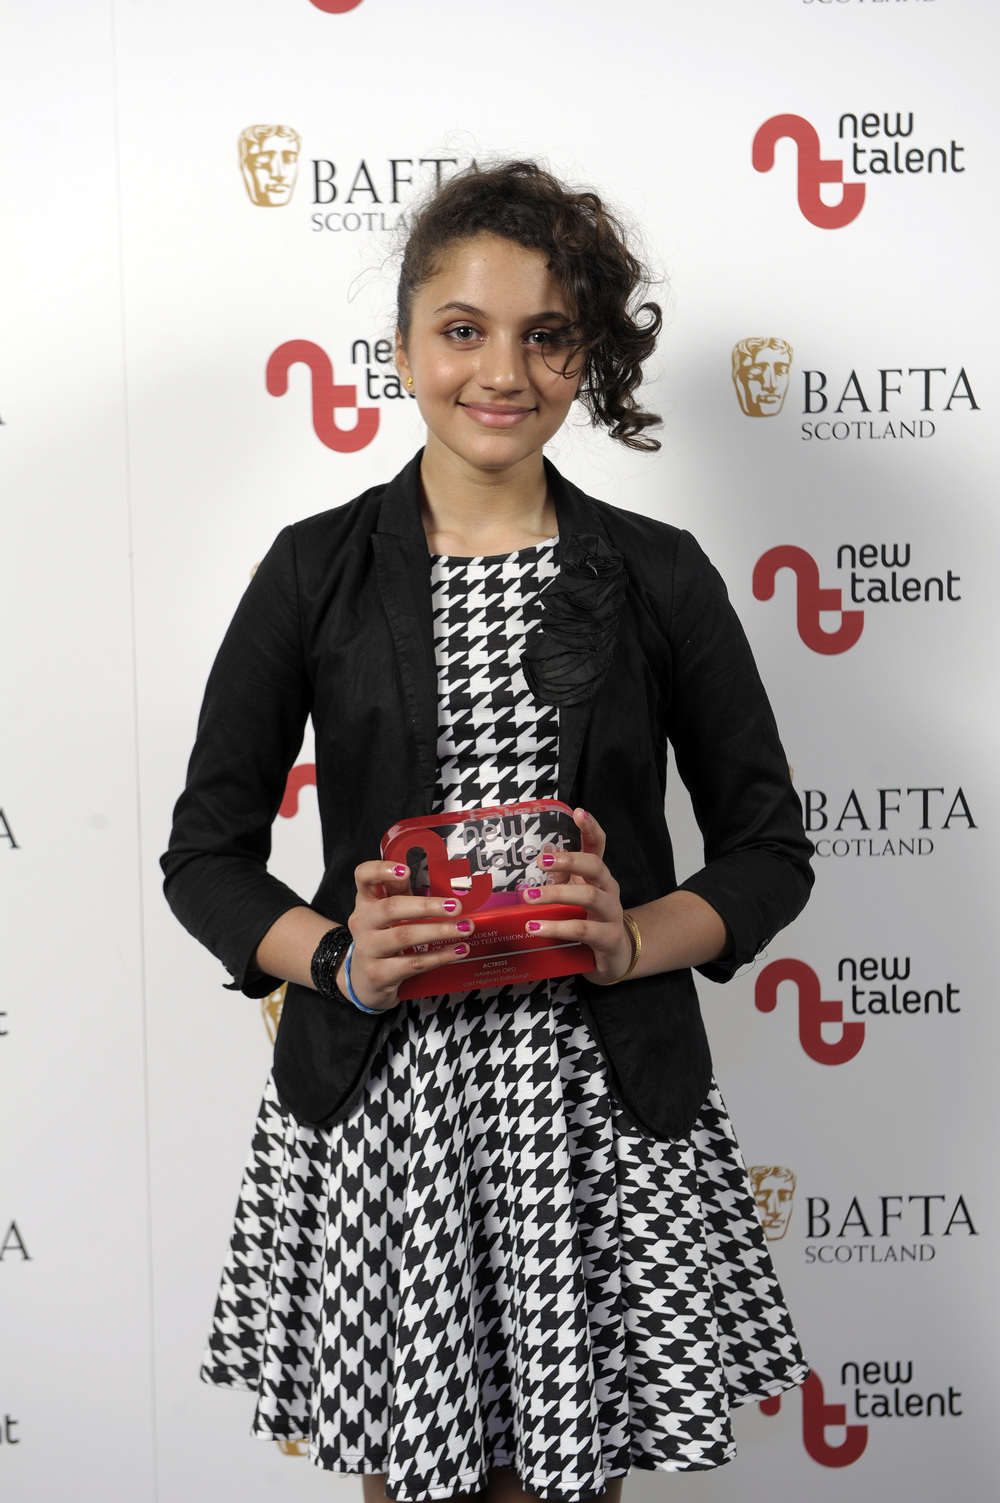 Hannah Ord Wins the Best Actress Award at BAFTA Scotland New Talent Awards